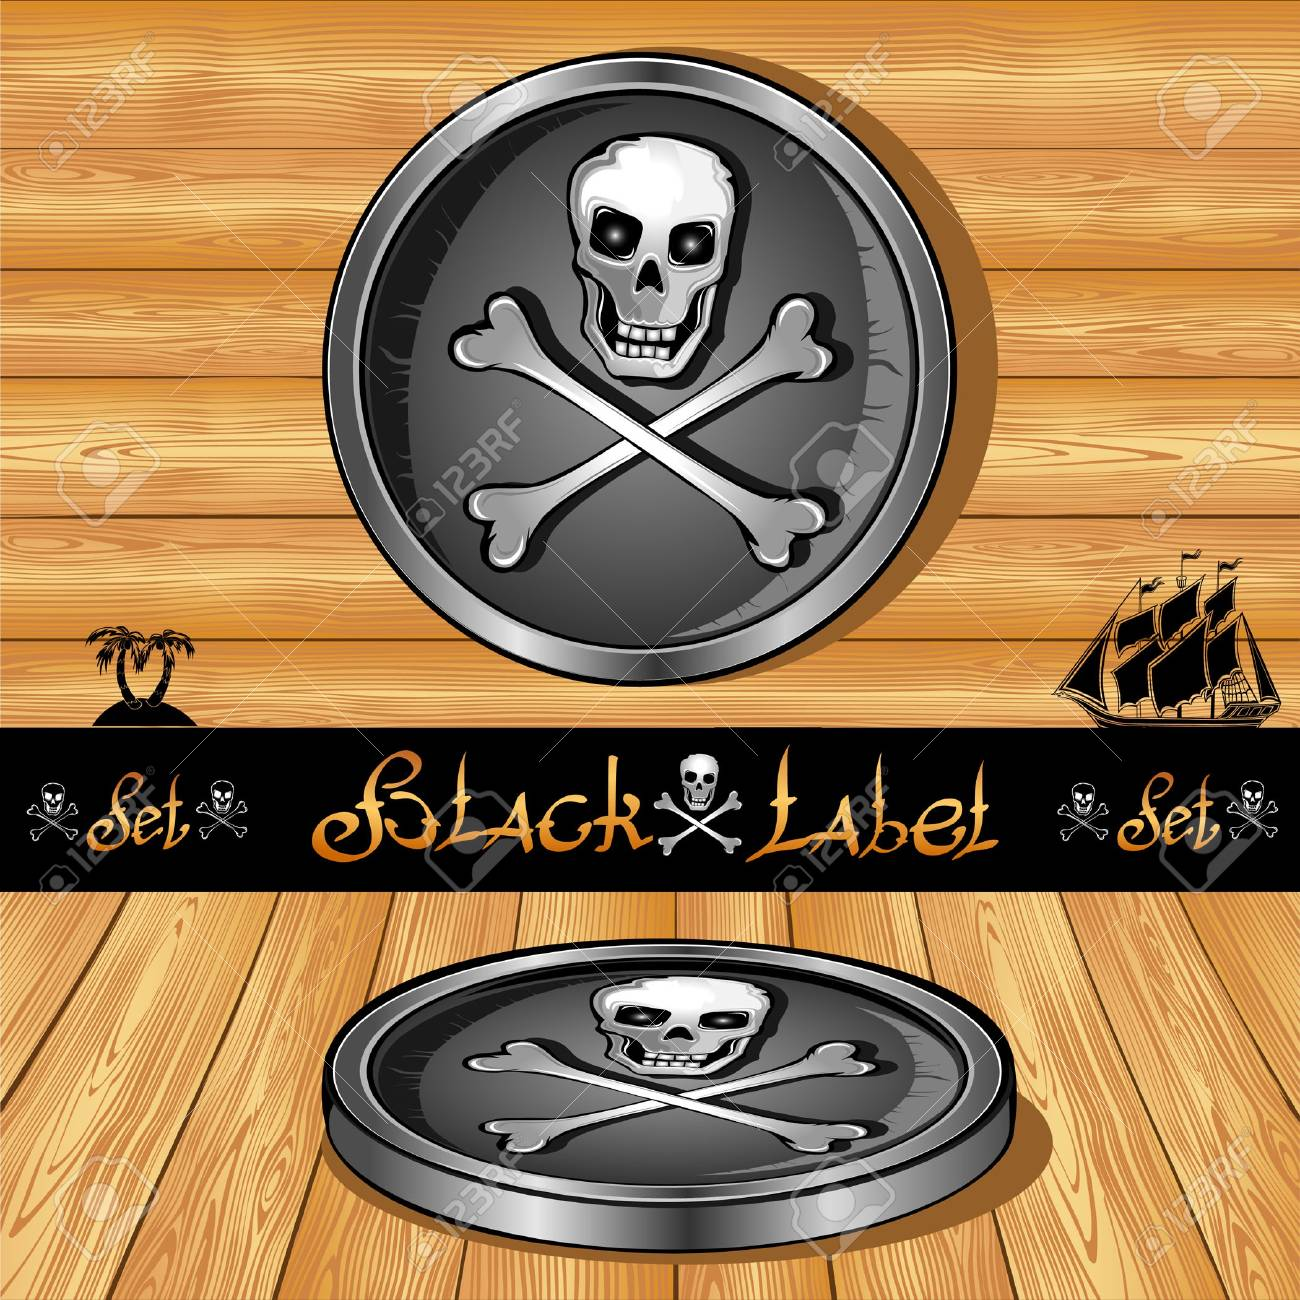 black label right and perspectiv on wooden background Stock Vector - 18181224